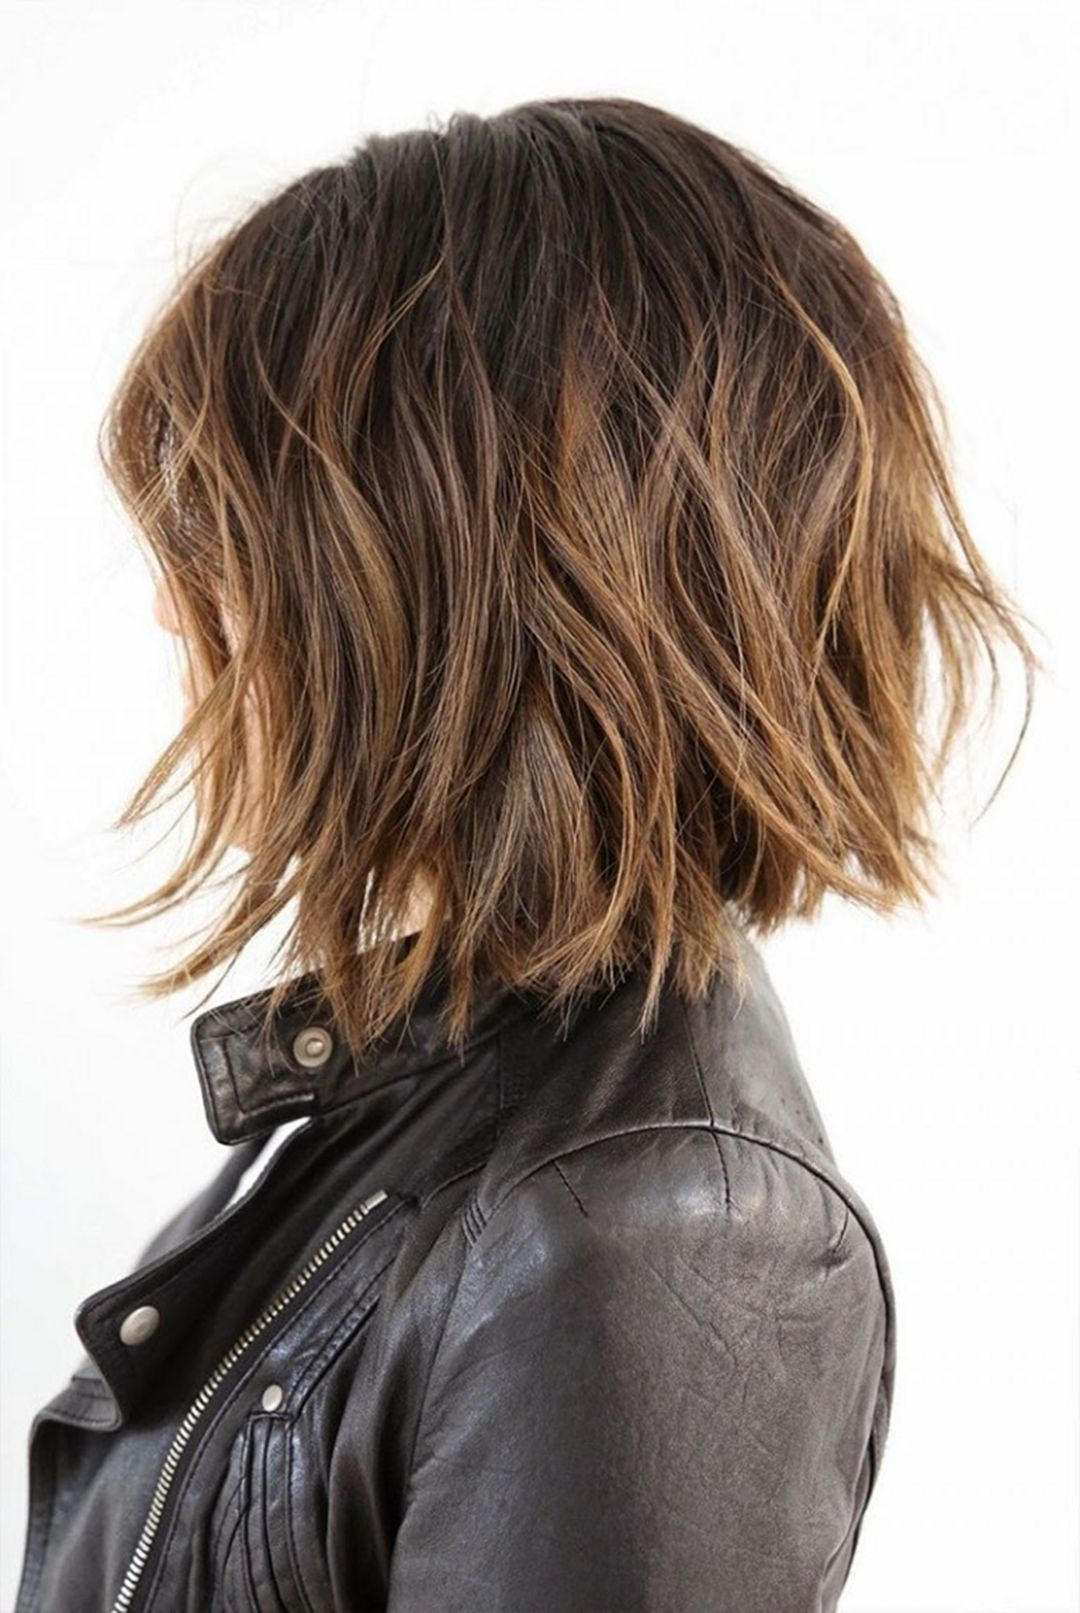 Chic 27 Short Hair Cuts With Bobs Layers For Women Inspiration - Fashions Nowadays